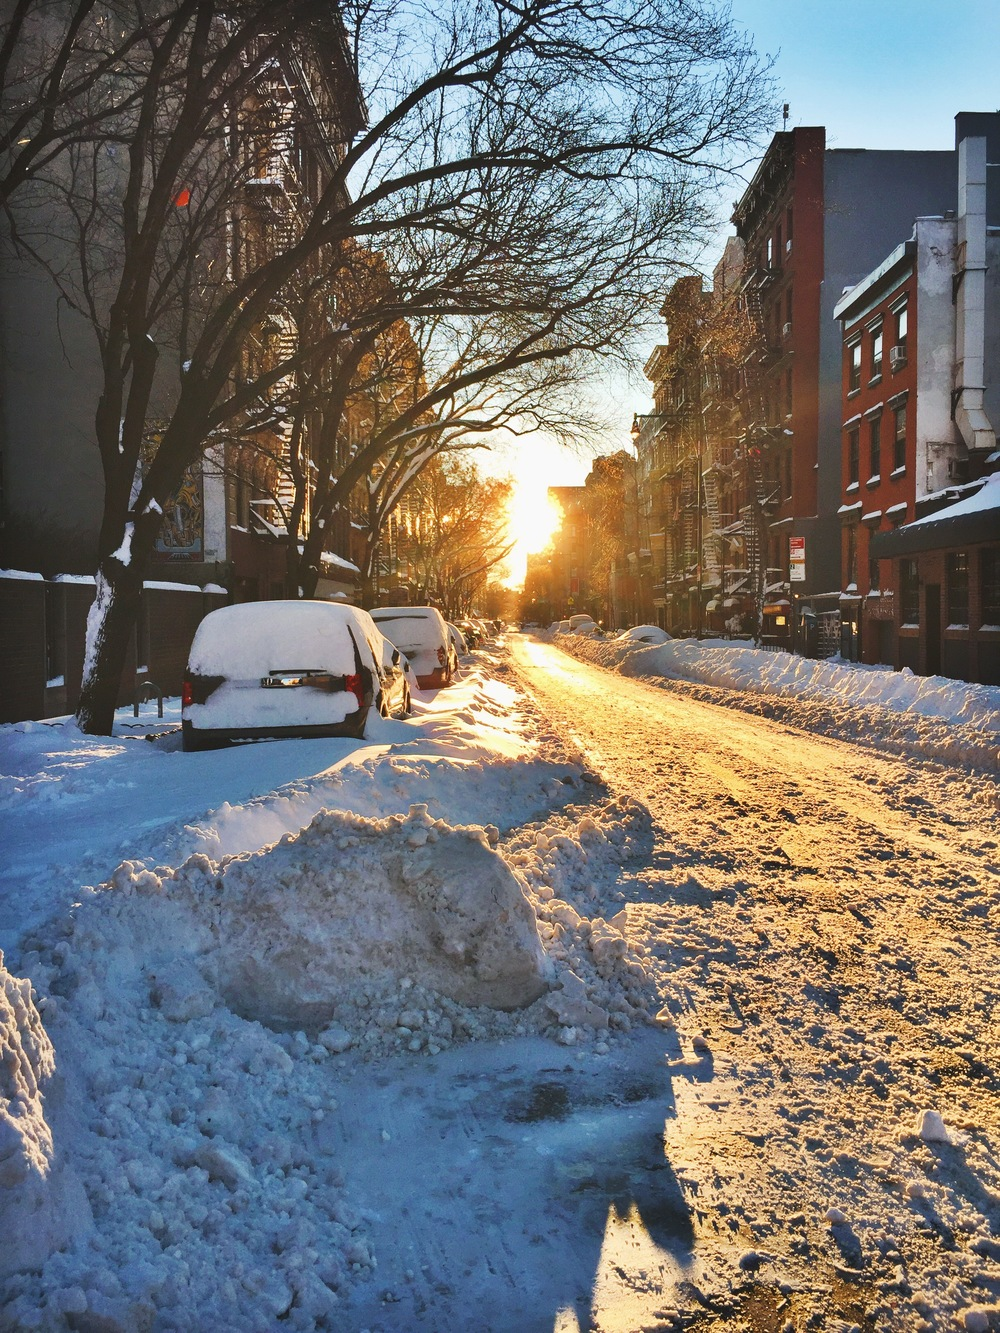 Nothing beats a sunrise covering the glean of fresh snow. Anything but frozen for the feels here.